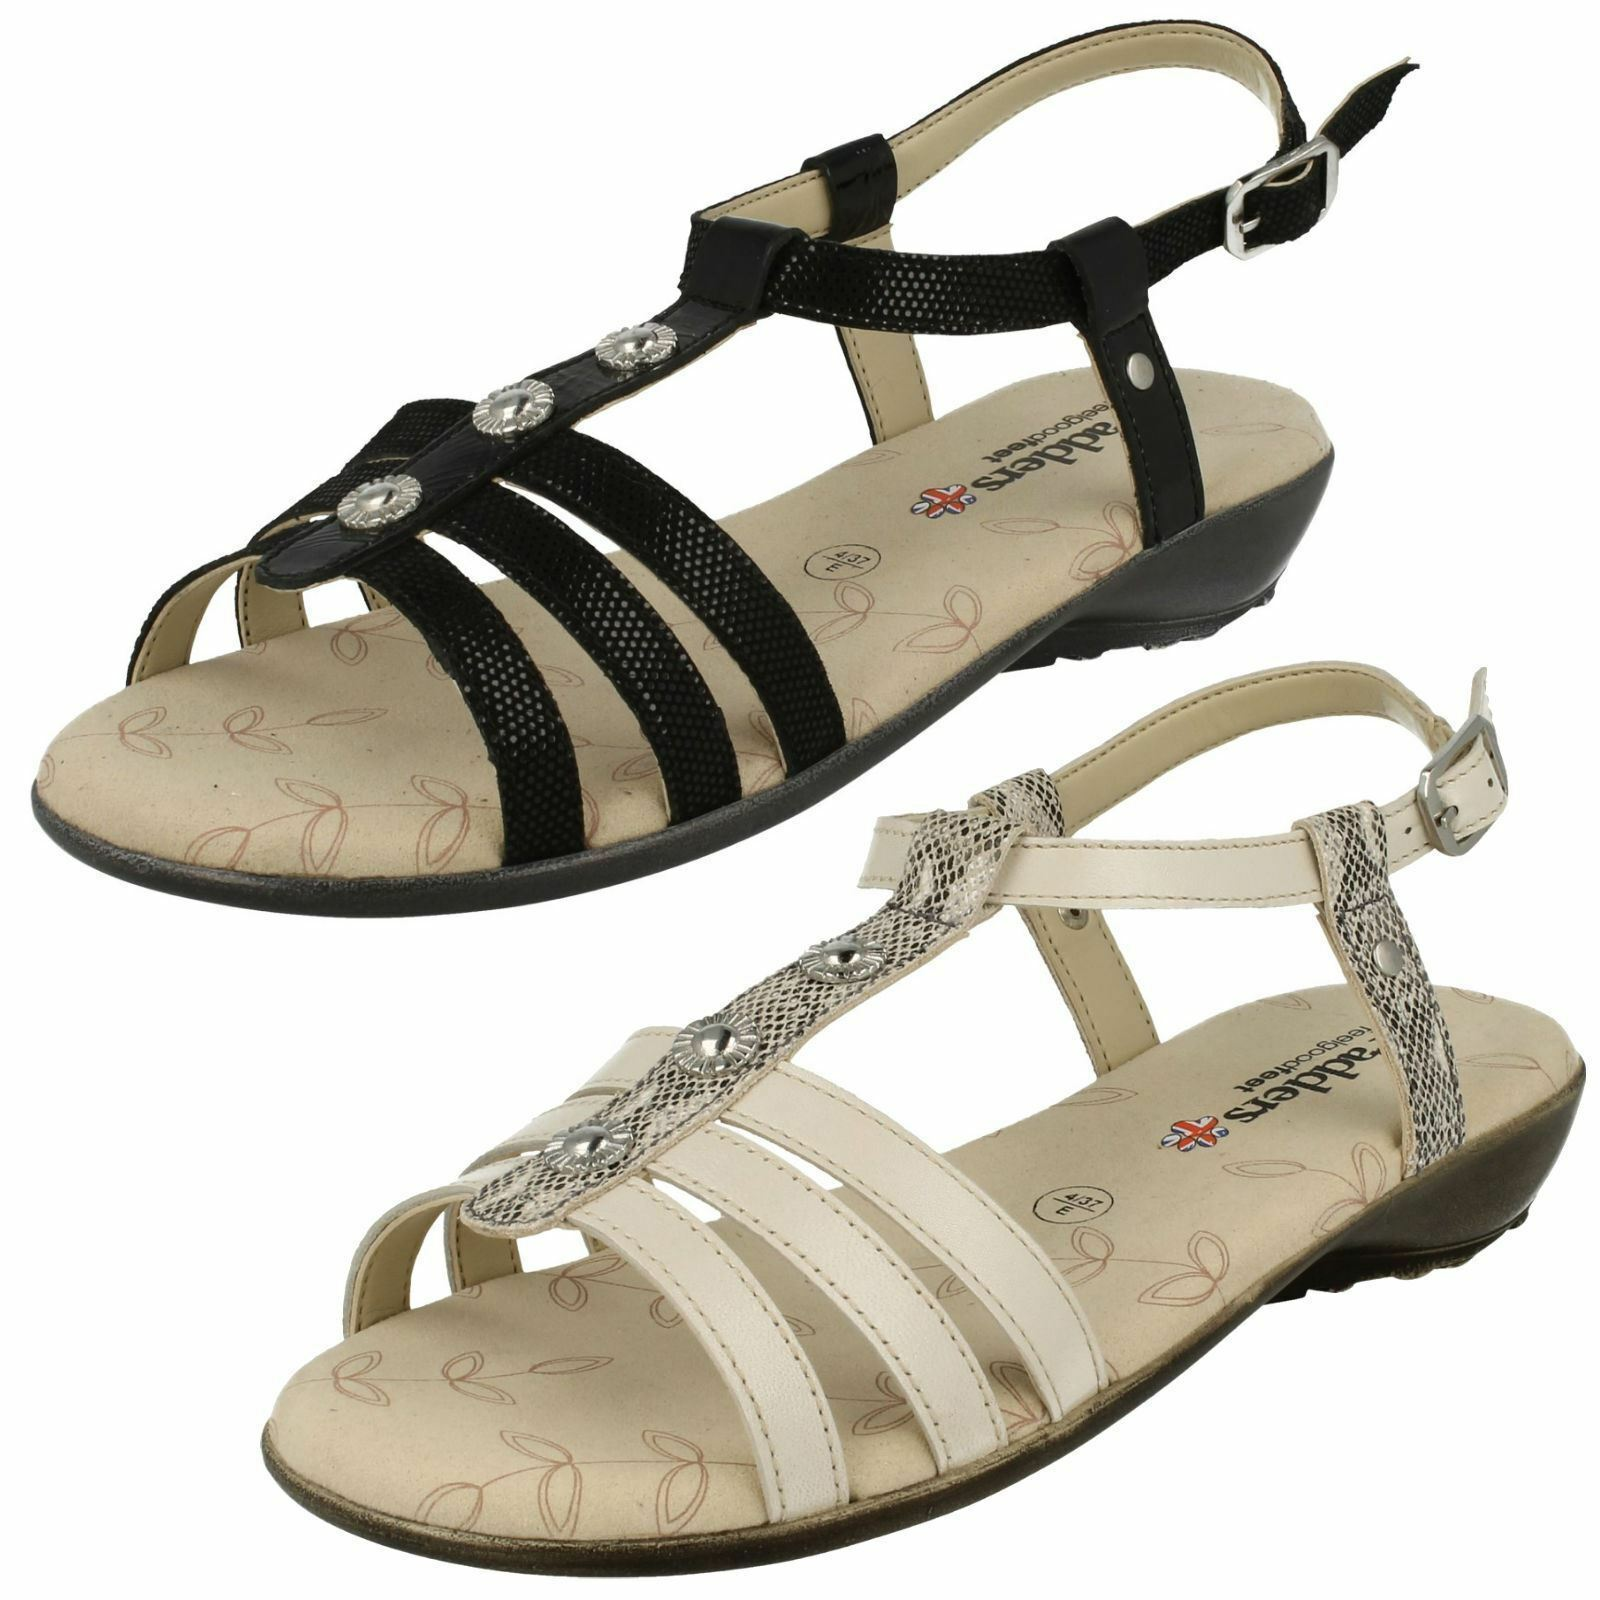 LADIES PADDERS PEARL 792 WIDE FIT OPEN TOE BUCKLE FASTEN CASUAL SUMMER SANDALS